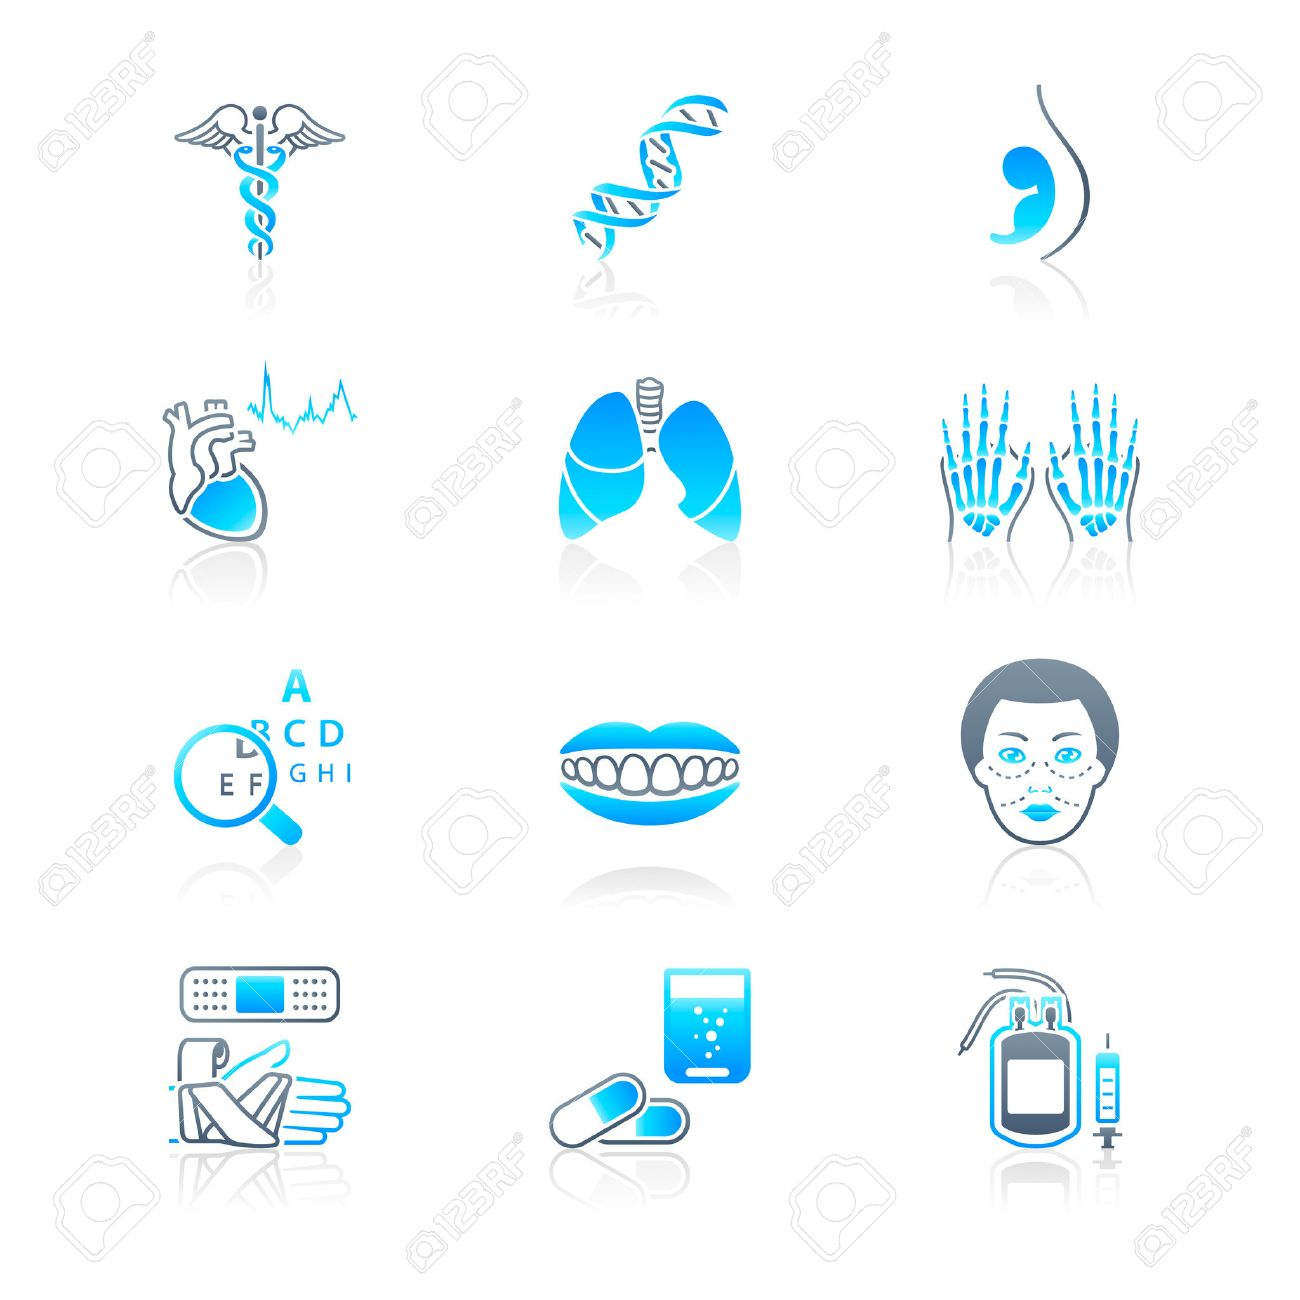 Medical symbols, specialties, human organs and health-care objects Stock Vector - 8142266